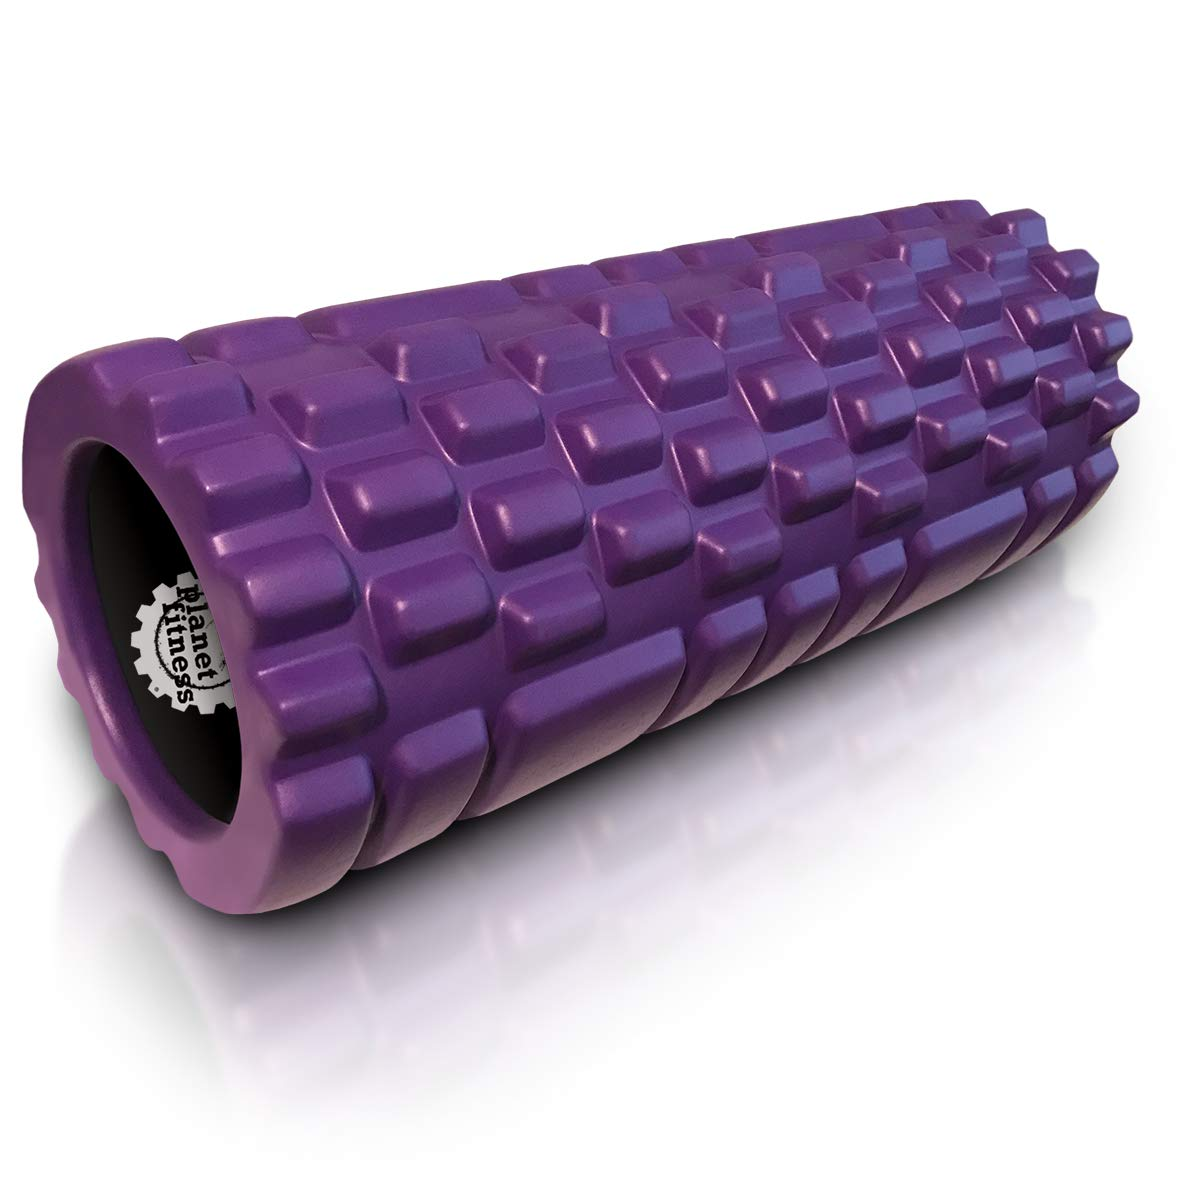 Planet Fitness Muscle Massager Foam Roller for Deep Tissue Massage, Back, Trigger Point Therapy, Purple 13''